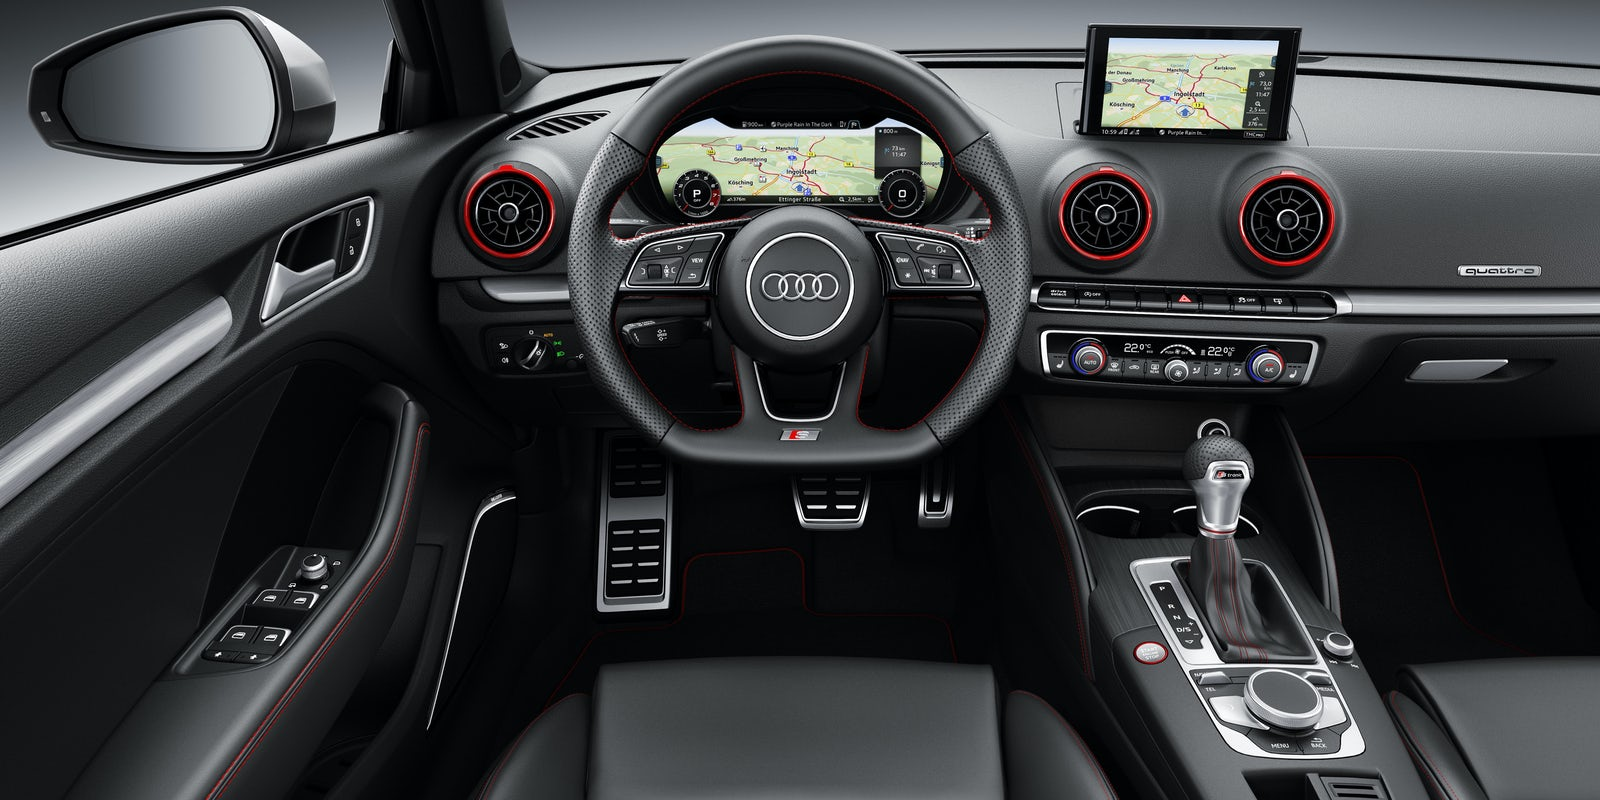 2013 audi a3 interior. Black Bedroom Furniture Sets. Home Design Ideas